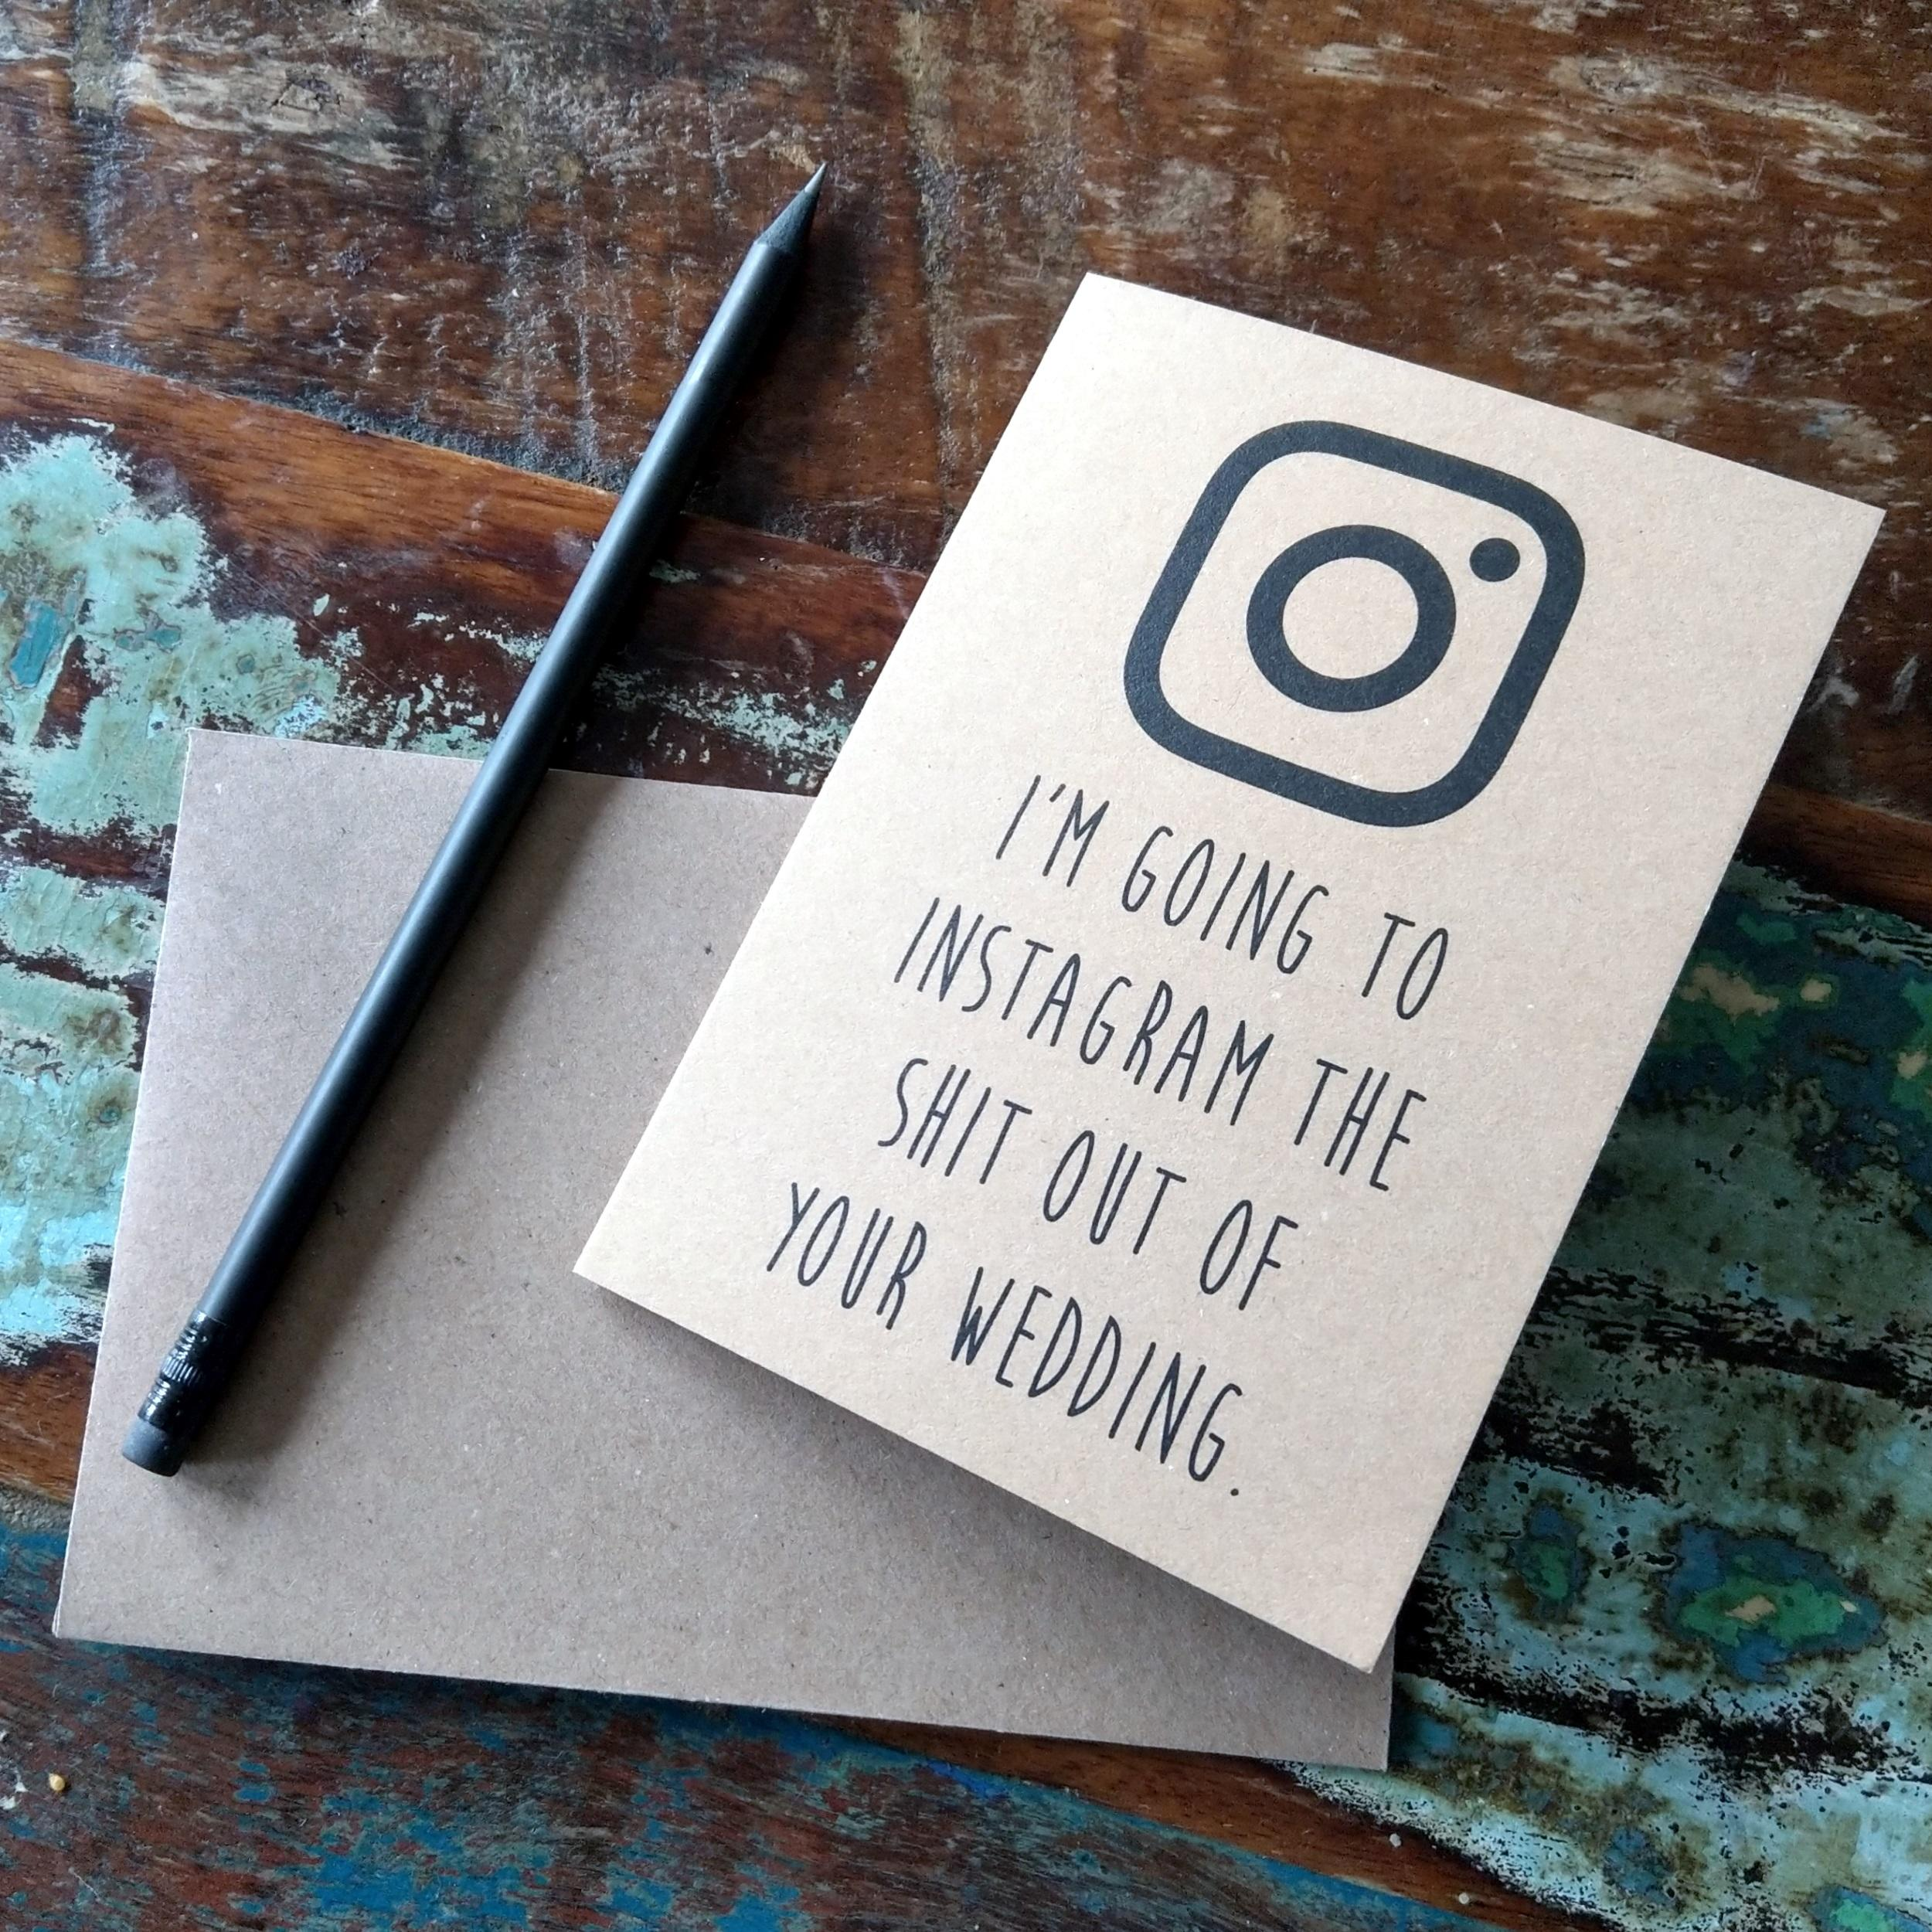 I'm Going to Instagram the Shit Out of Your Wedding Card